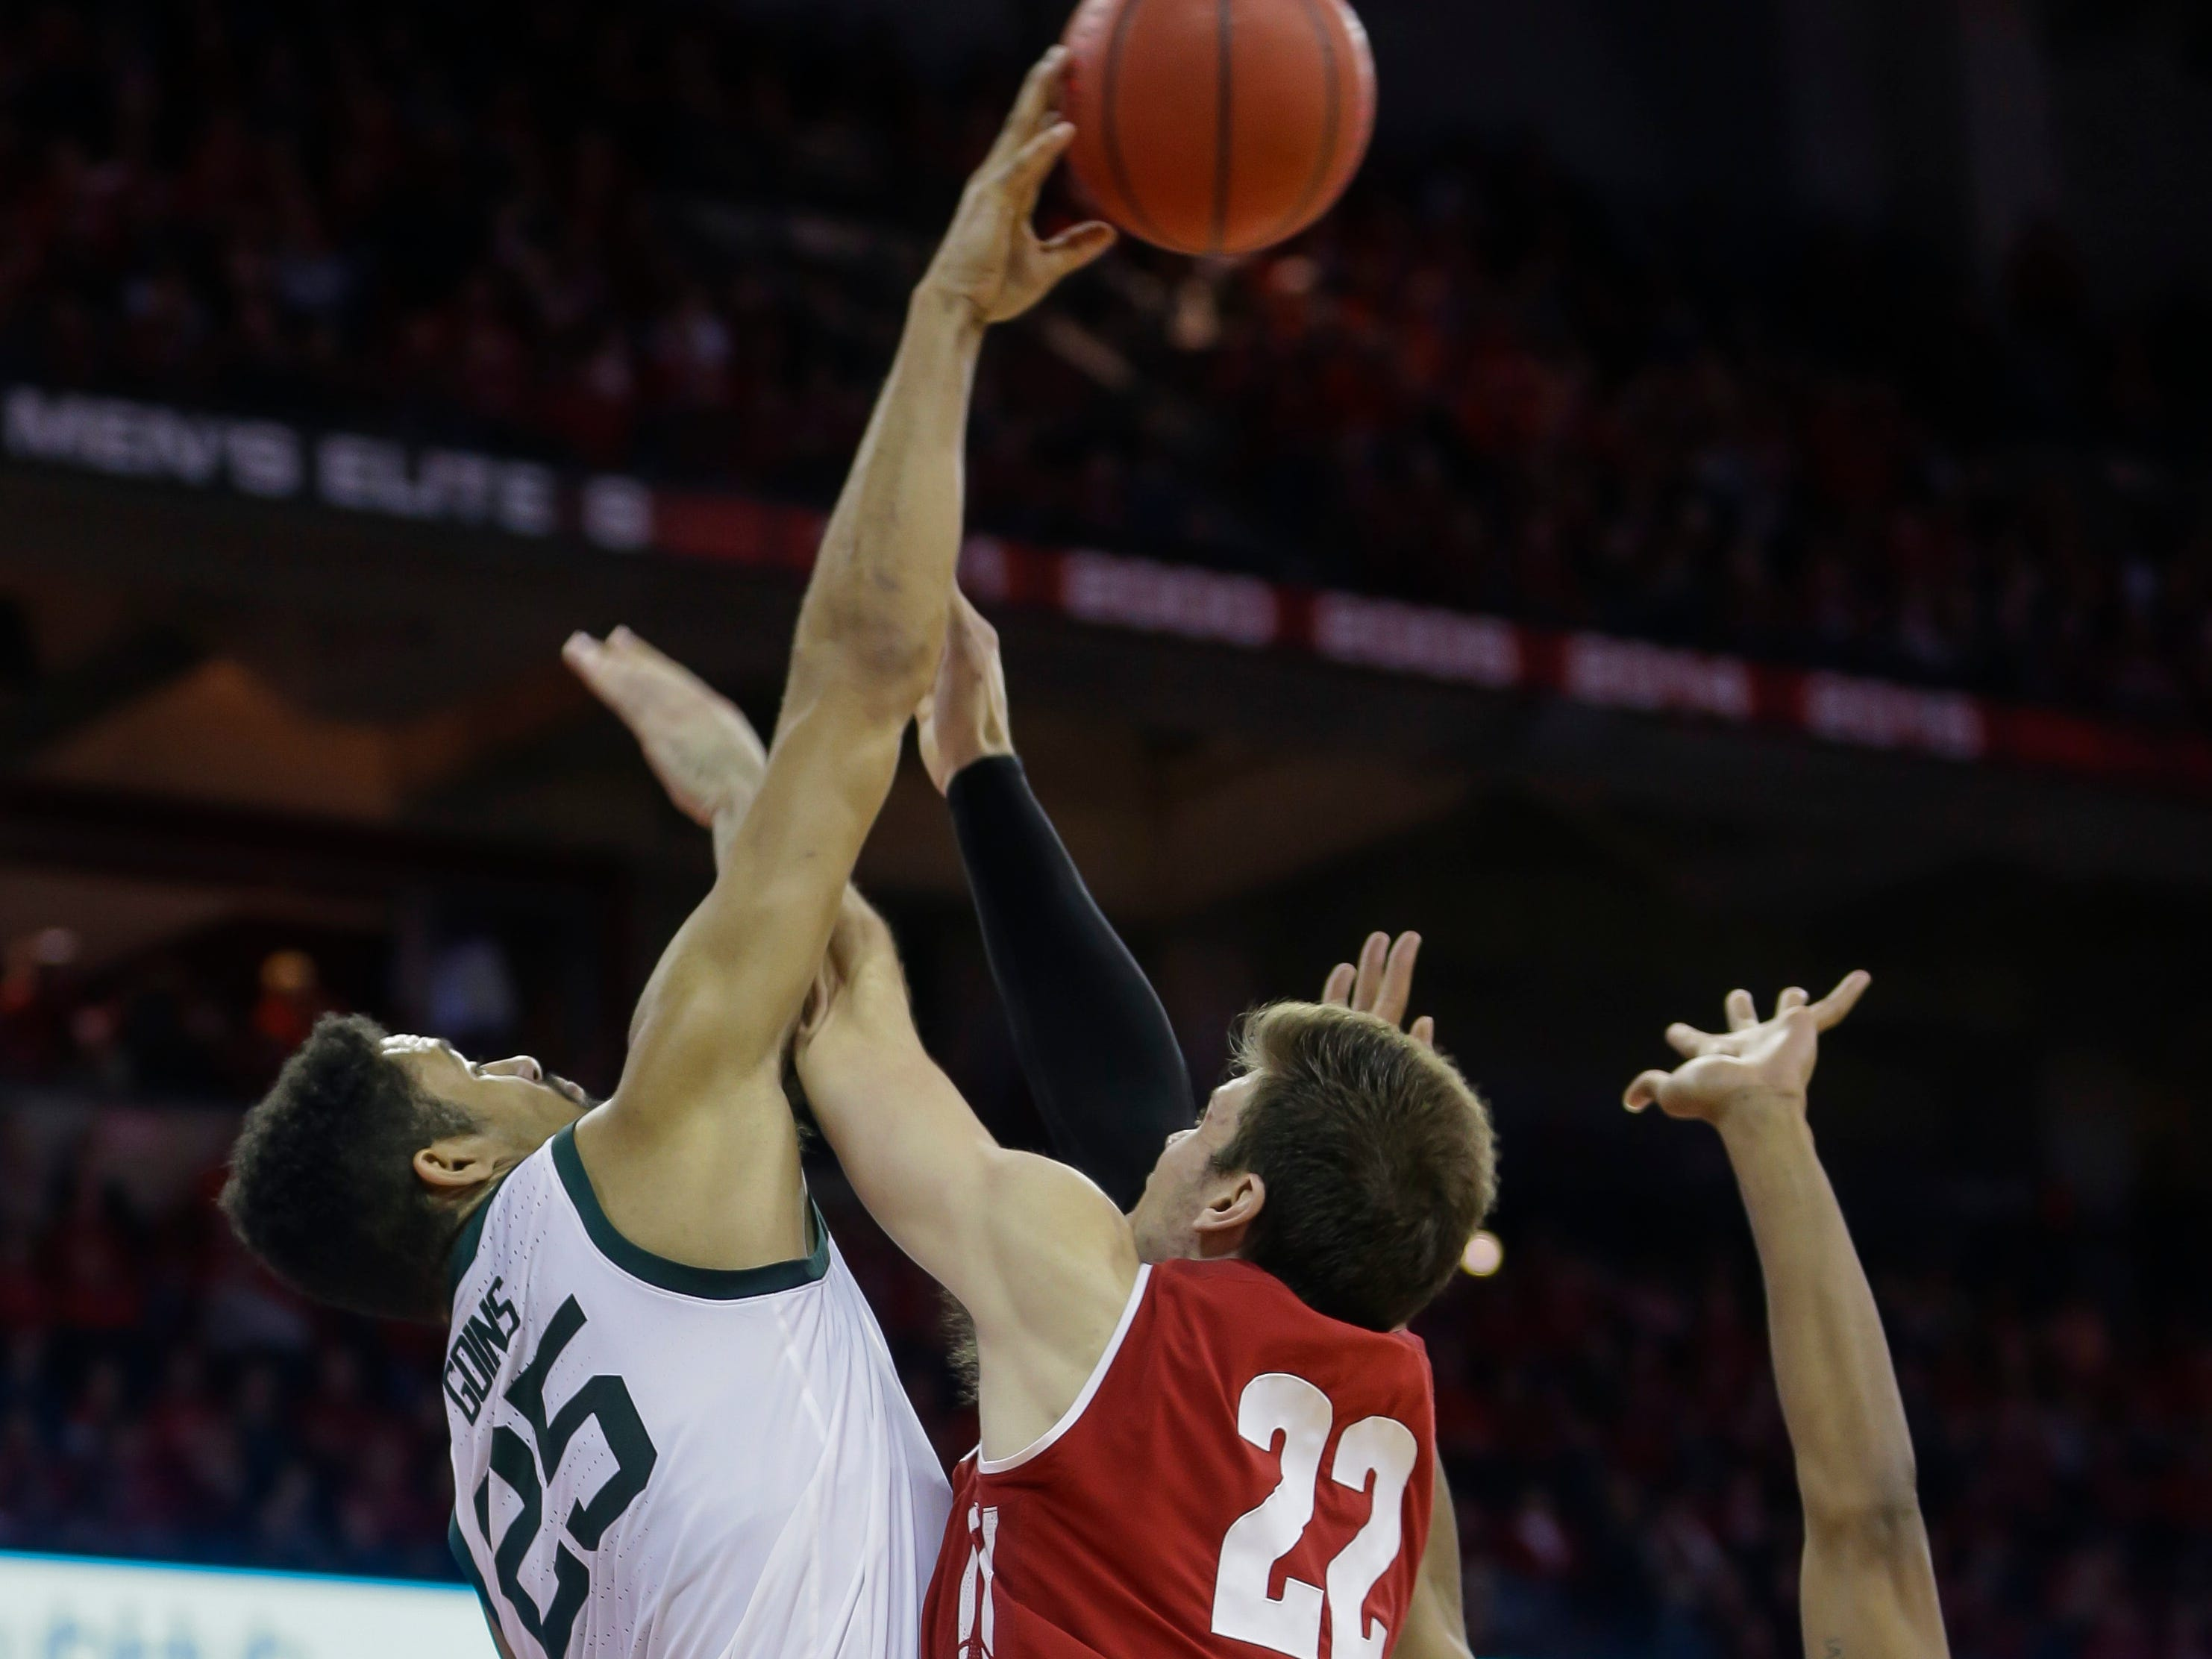 Michigan State's Kenny Goins (25) blocks a shot by Wisconsin's Ethan Happ (22) during the second half.